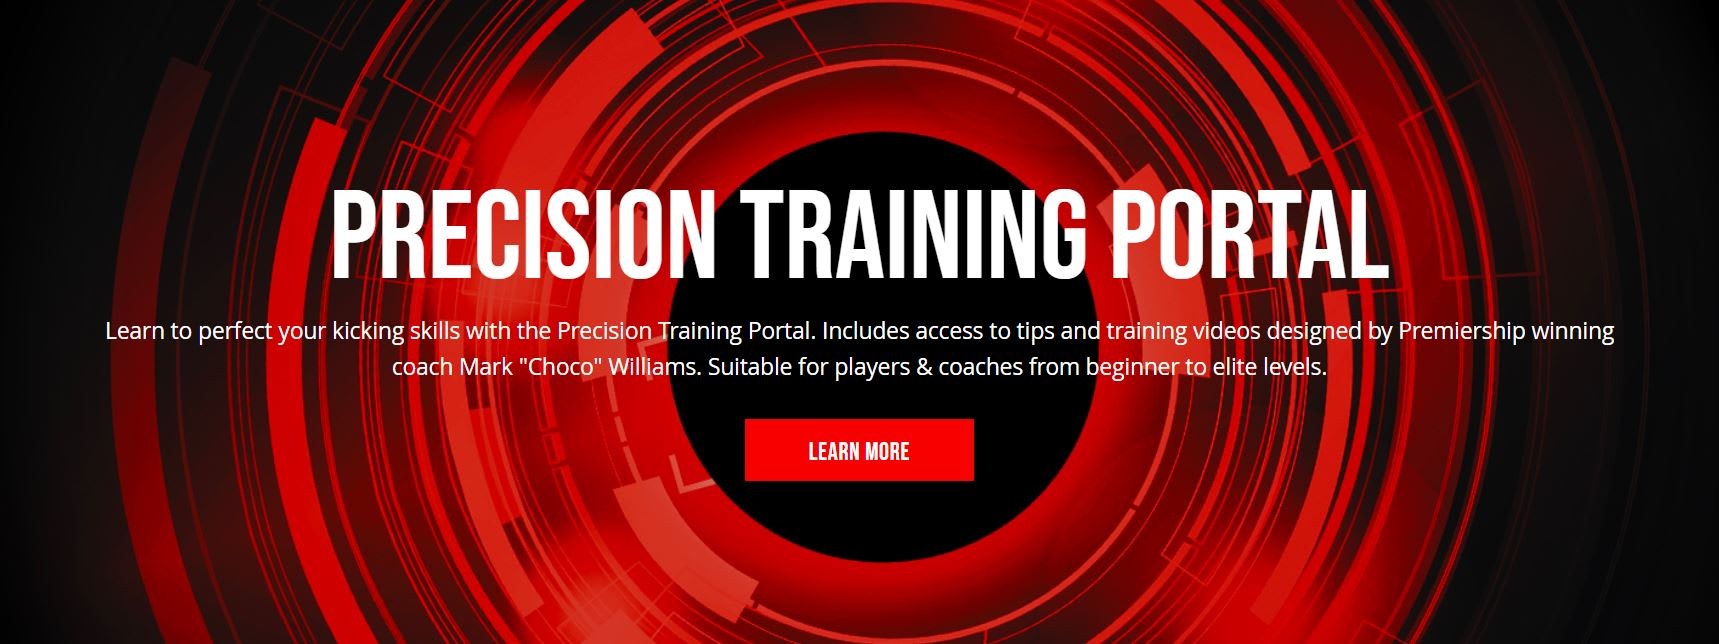 Precision training portal